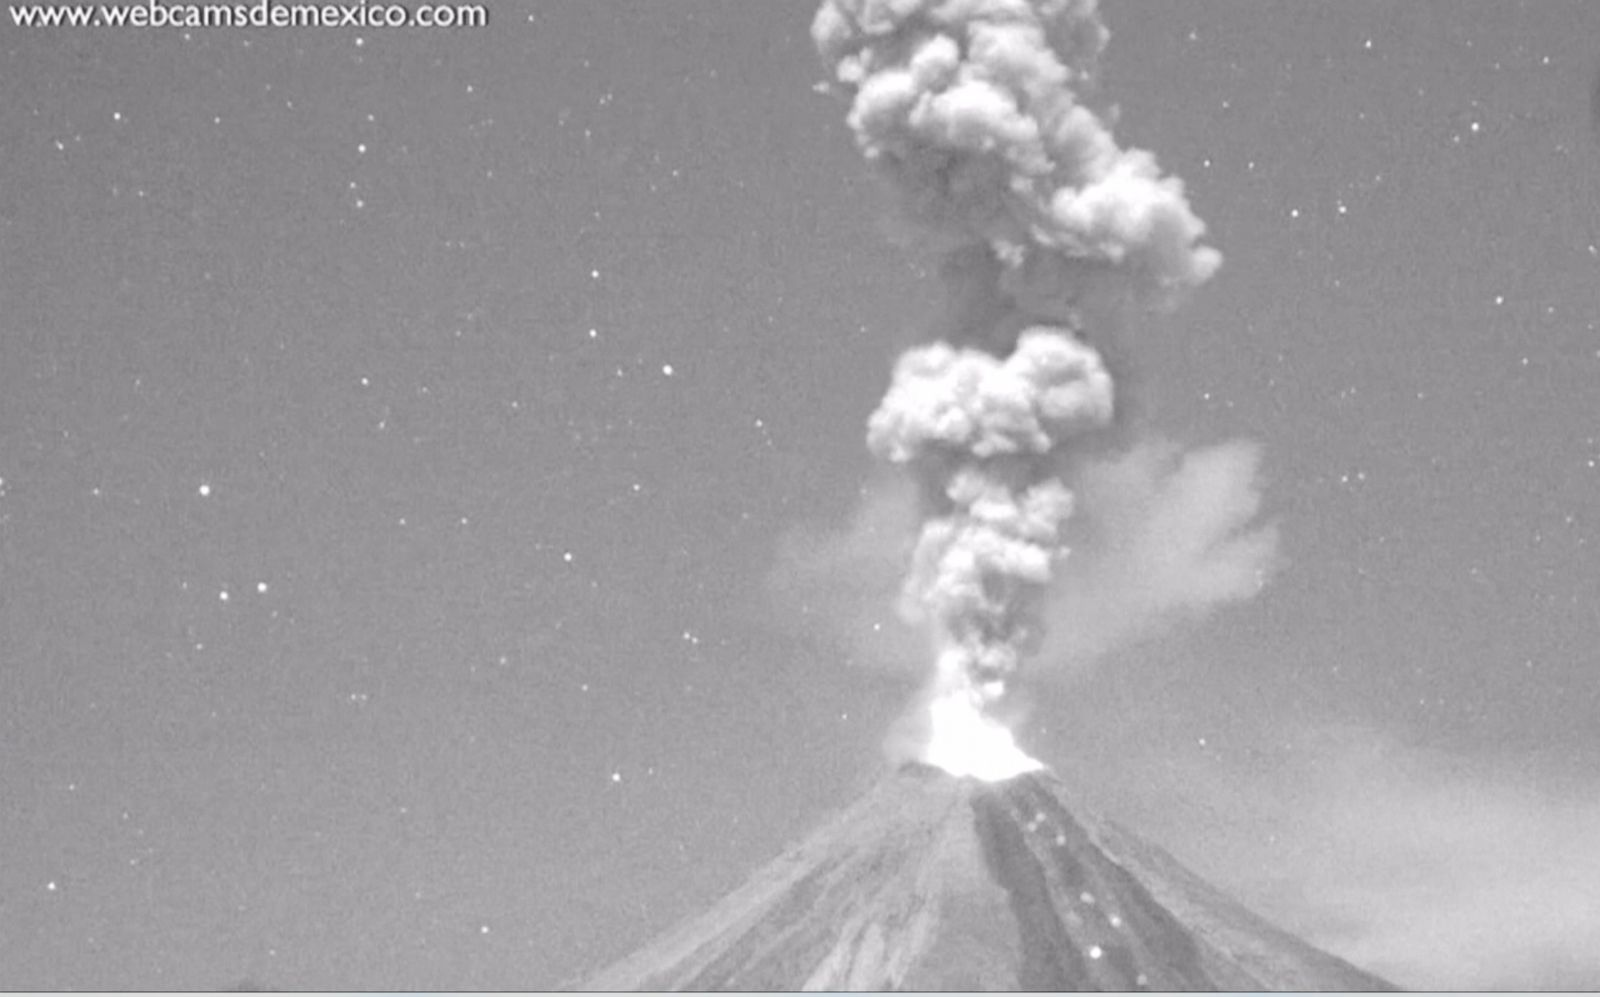 Mexico's Colima volcano, one of the most active volcanoes in Central America, erupts four times in one night.